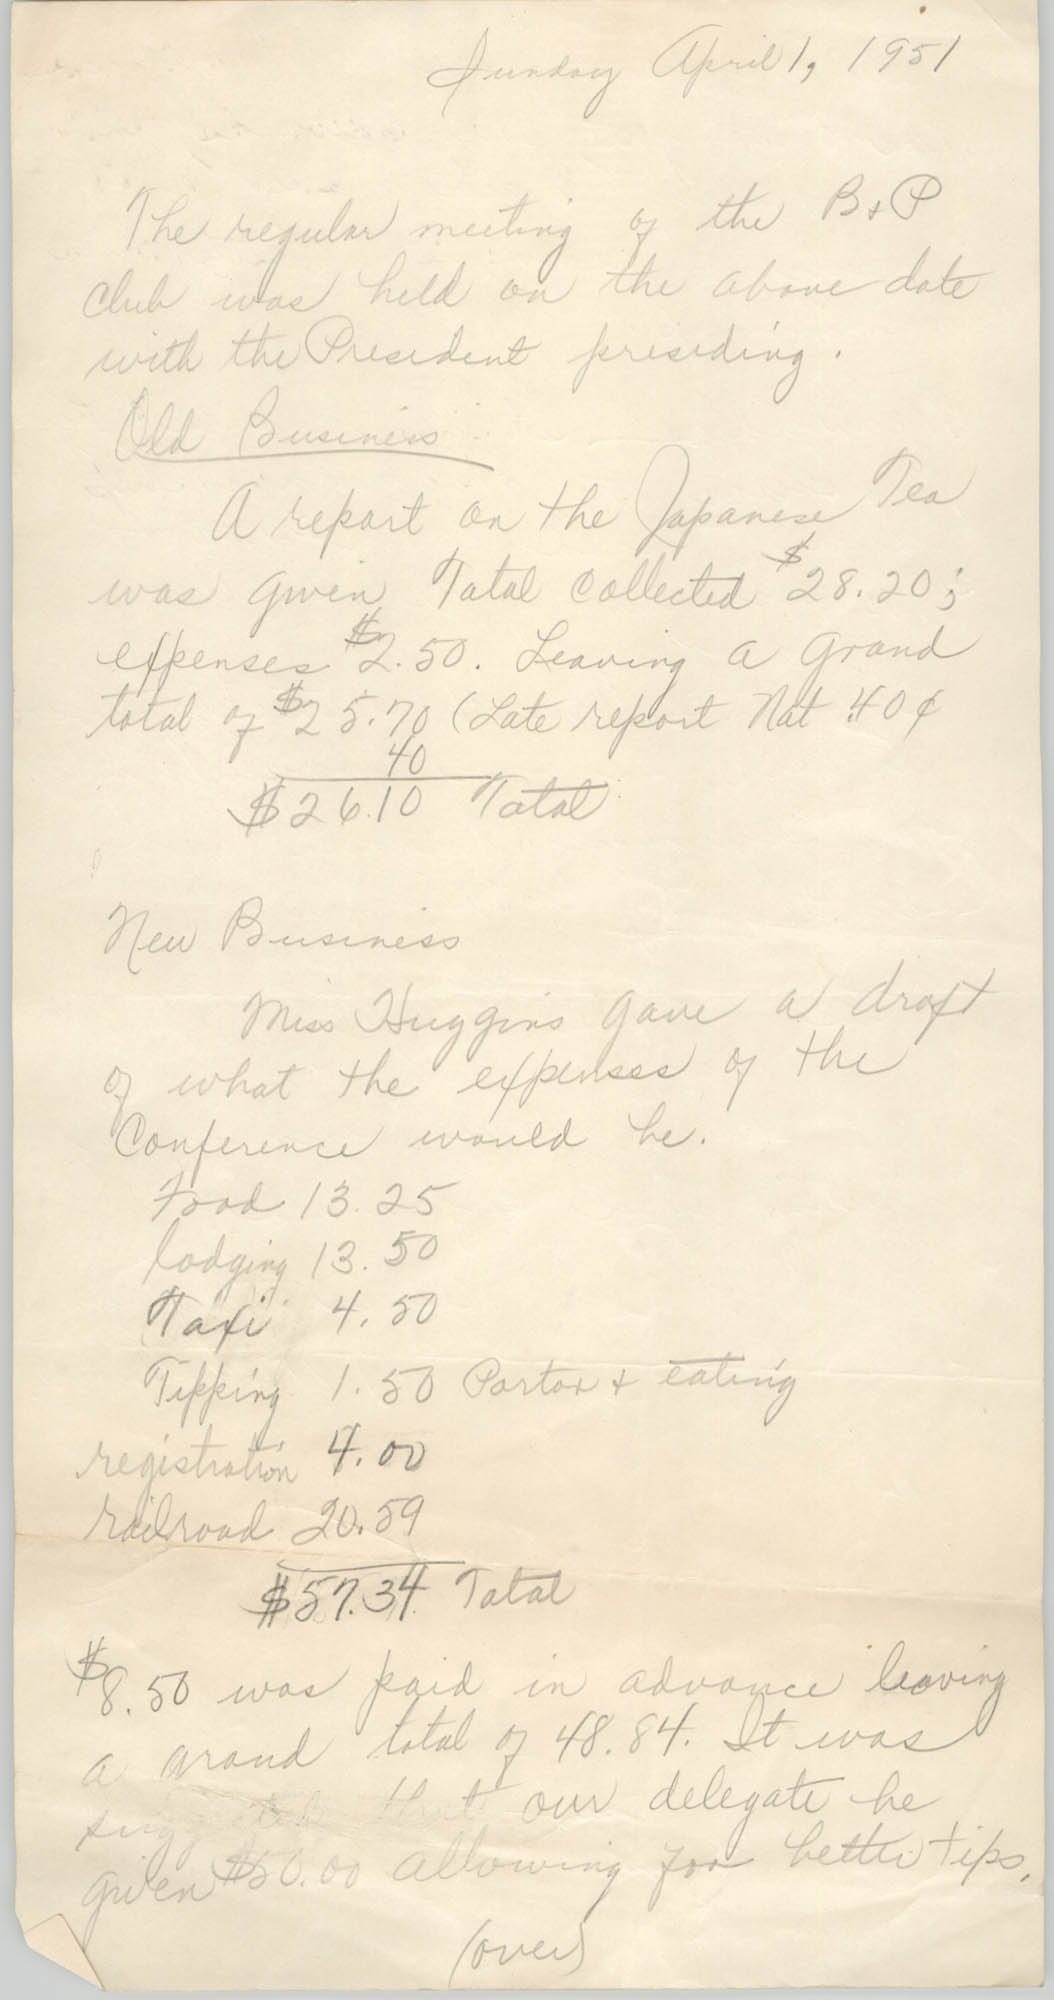 Minutes of the B. and P. Club, April 1, 1951